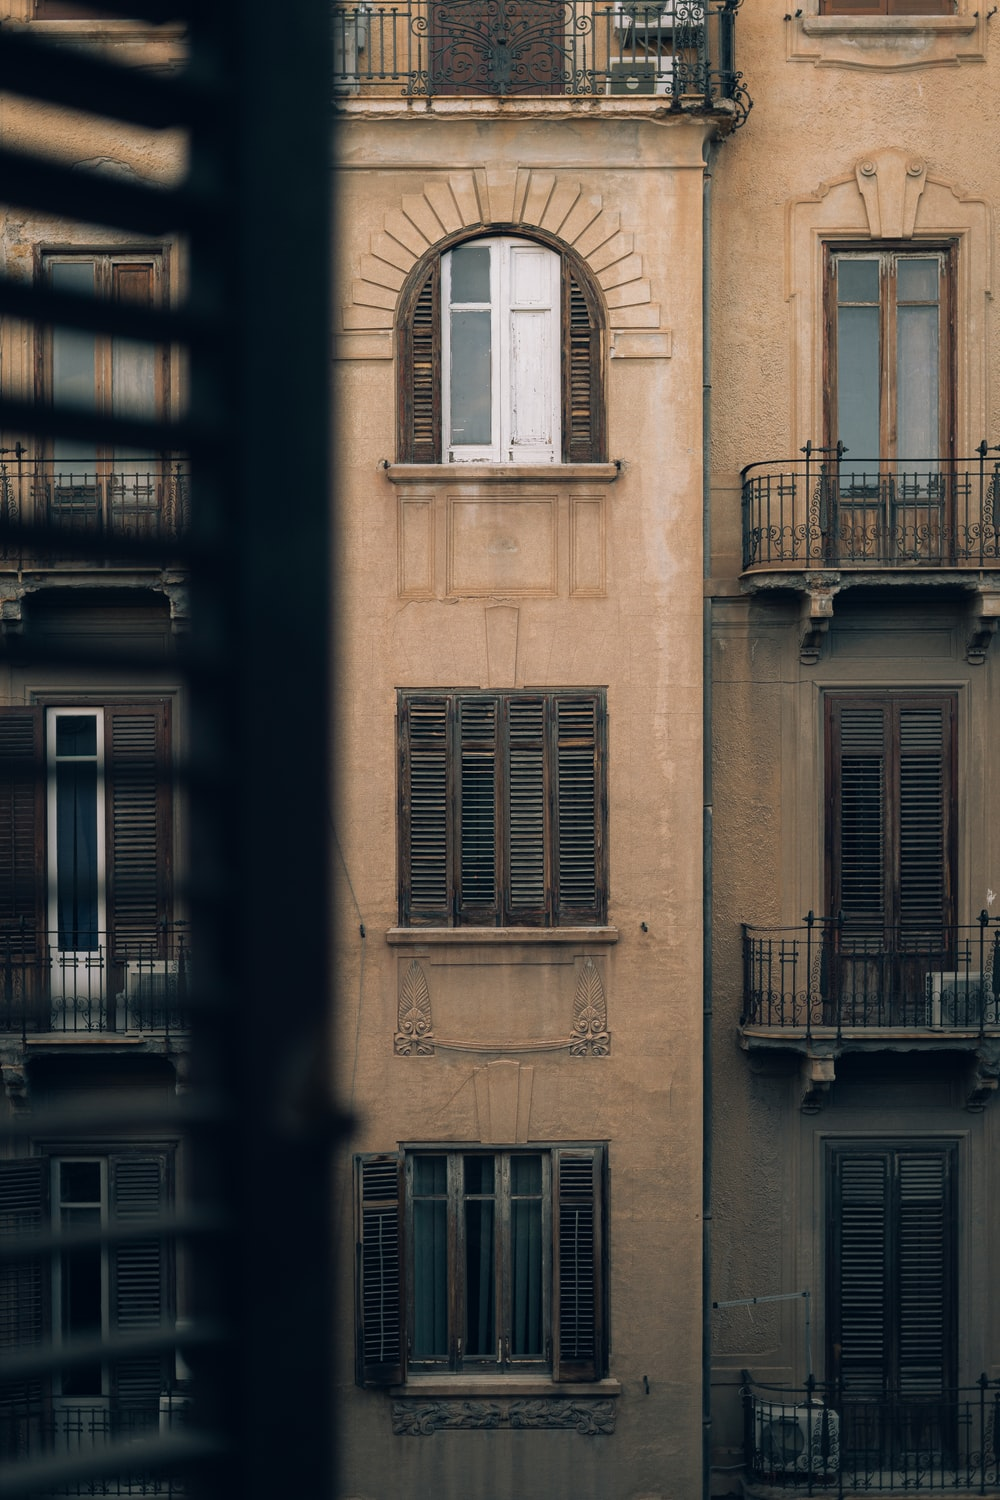 beige building with arch window